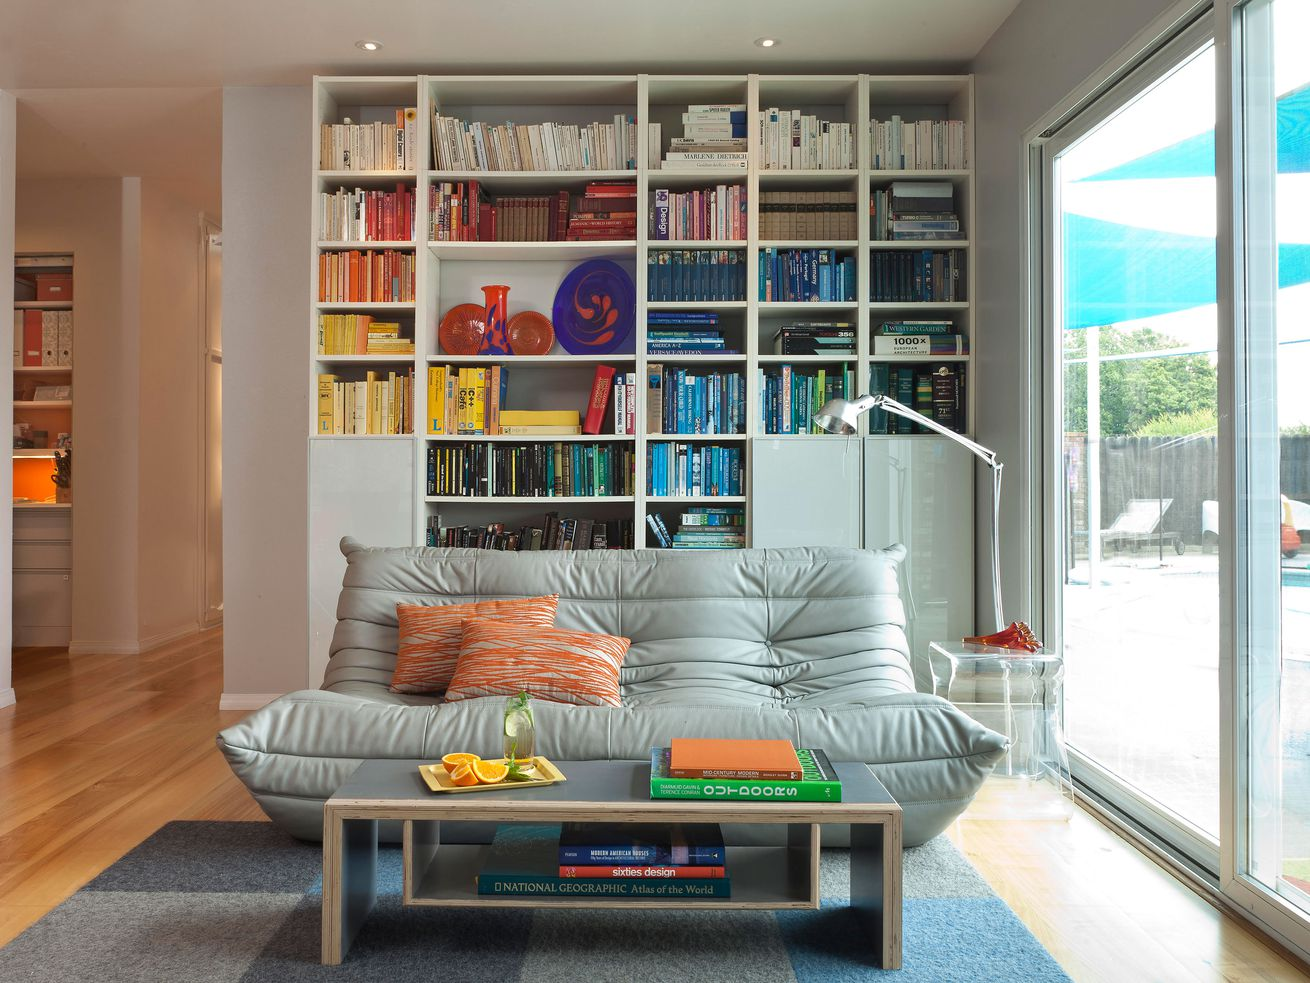 A modern living room with a library full of books that are color coordinated in a rainbow spectrum.